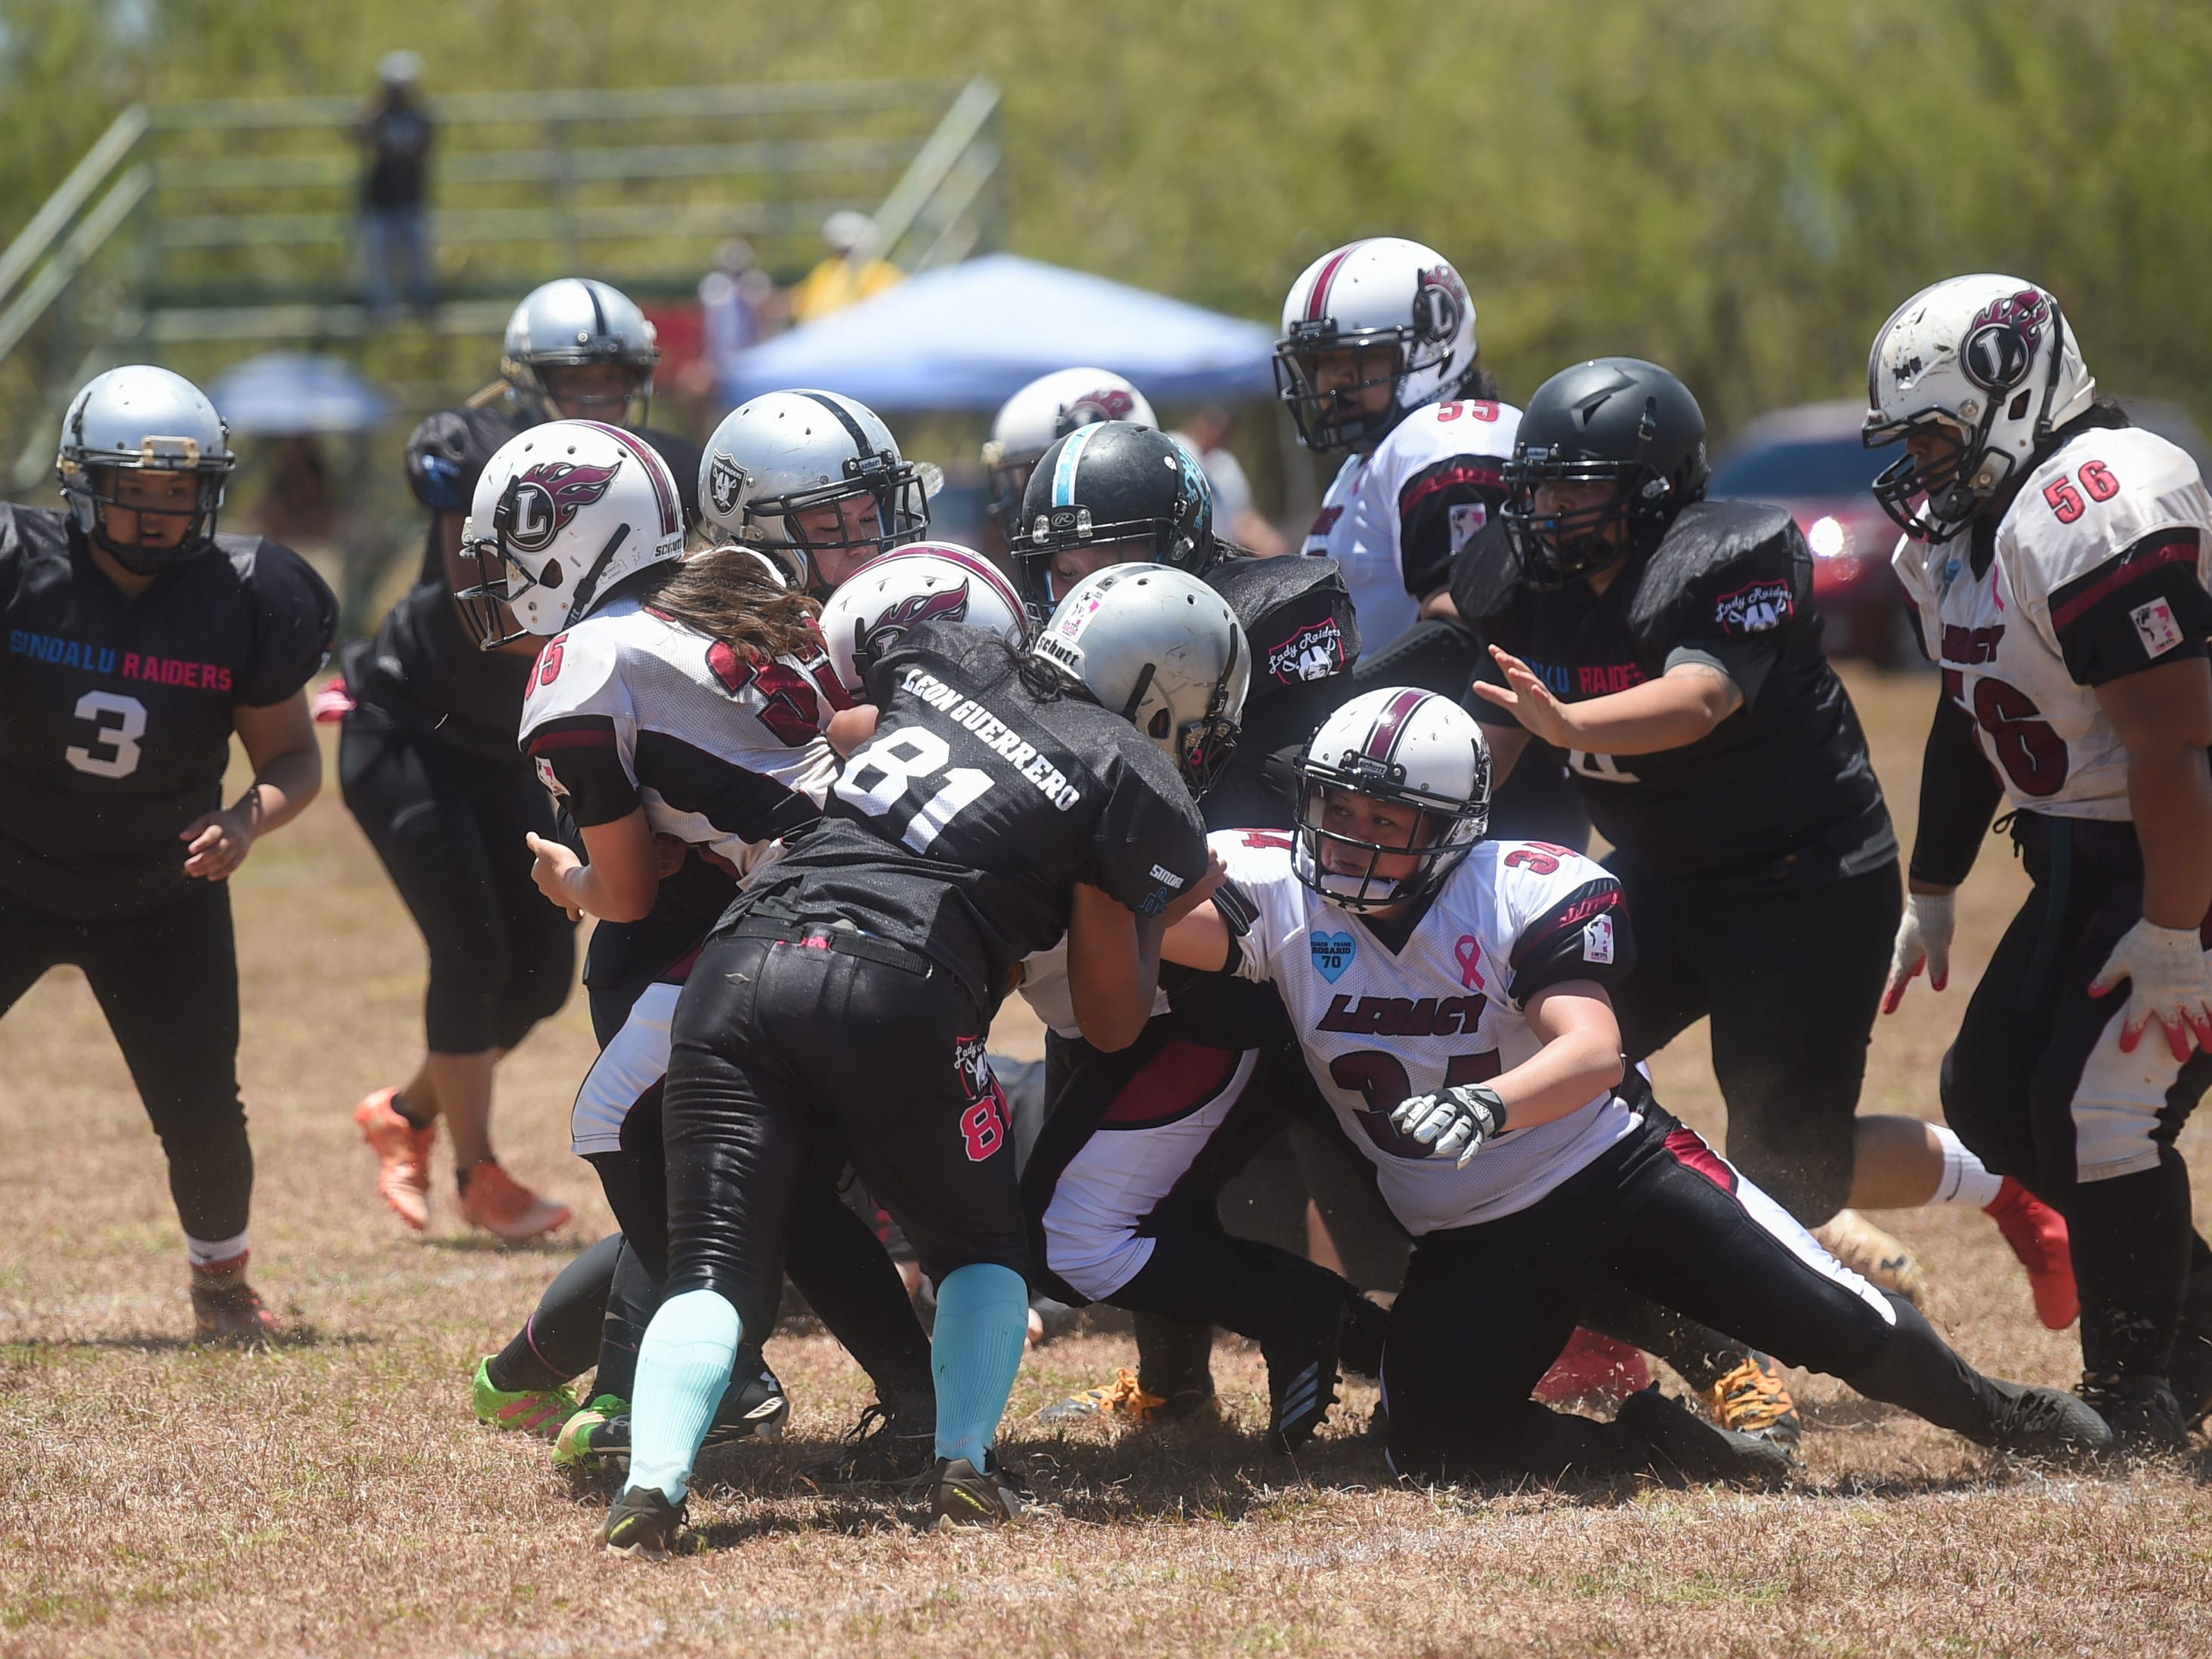 A Legacy run is stopped by the Sindalu/Raiders' defense during their 2019 Bud Light GWTFL game at the University of Guam Field in Mangilao, May 11, 2019. Legacy came away with a 20-0 victory for their second game of the season.